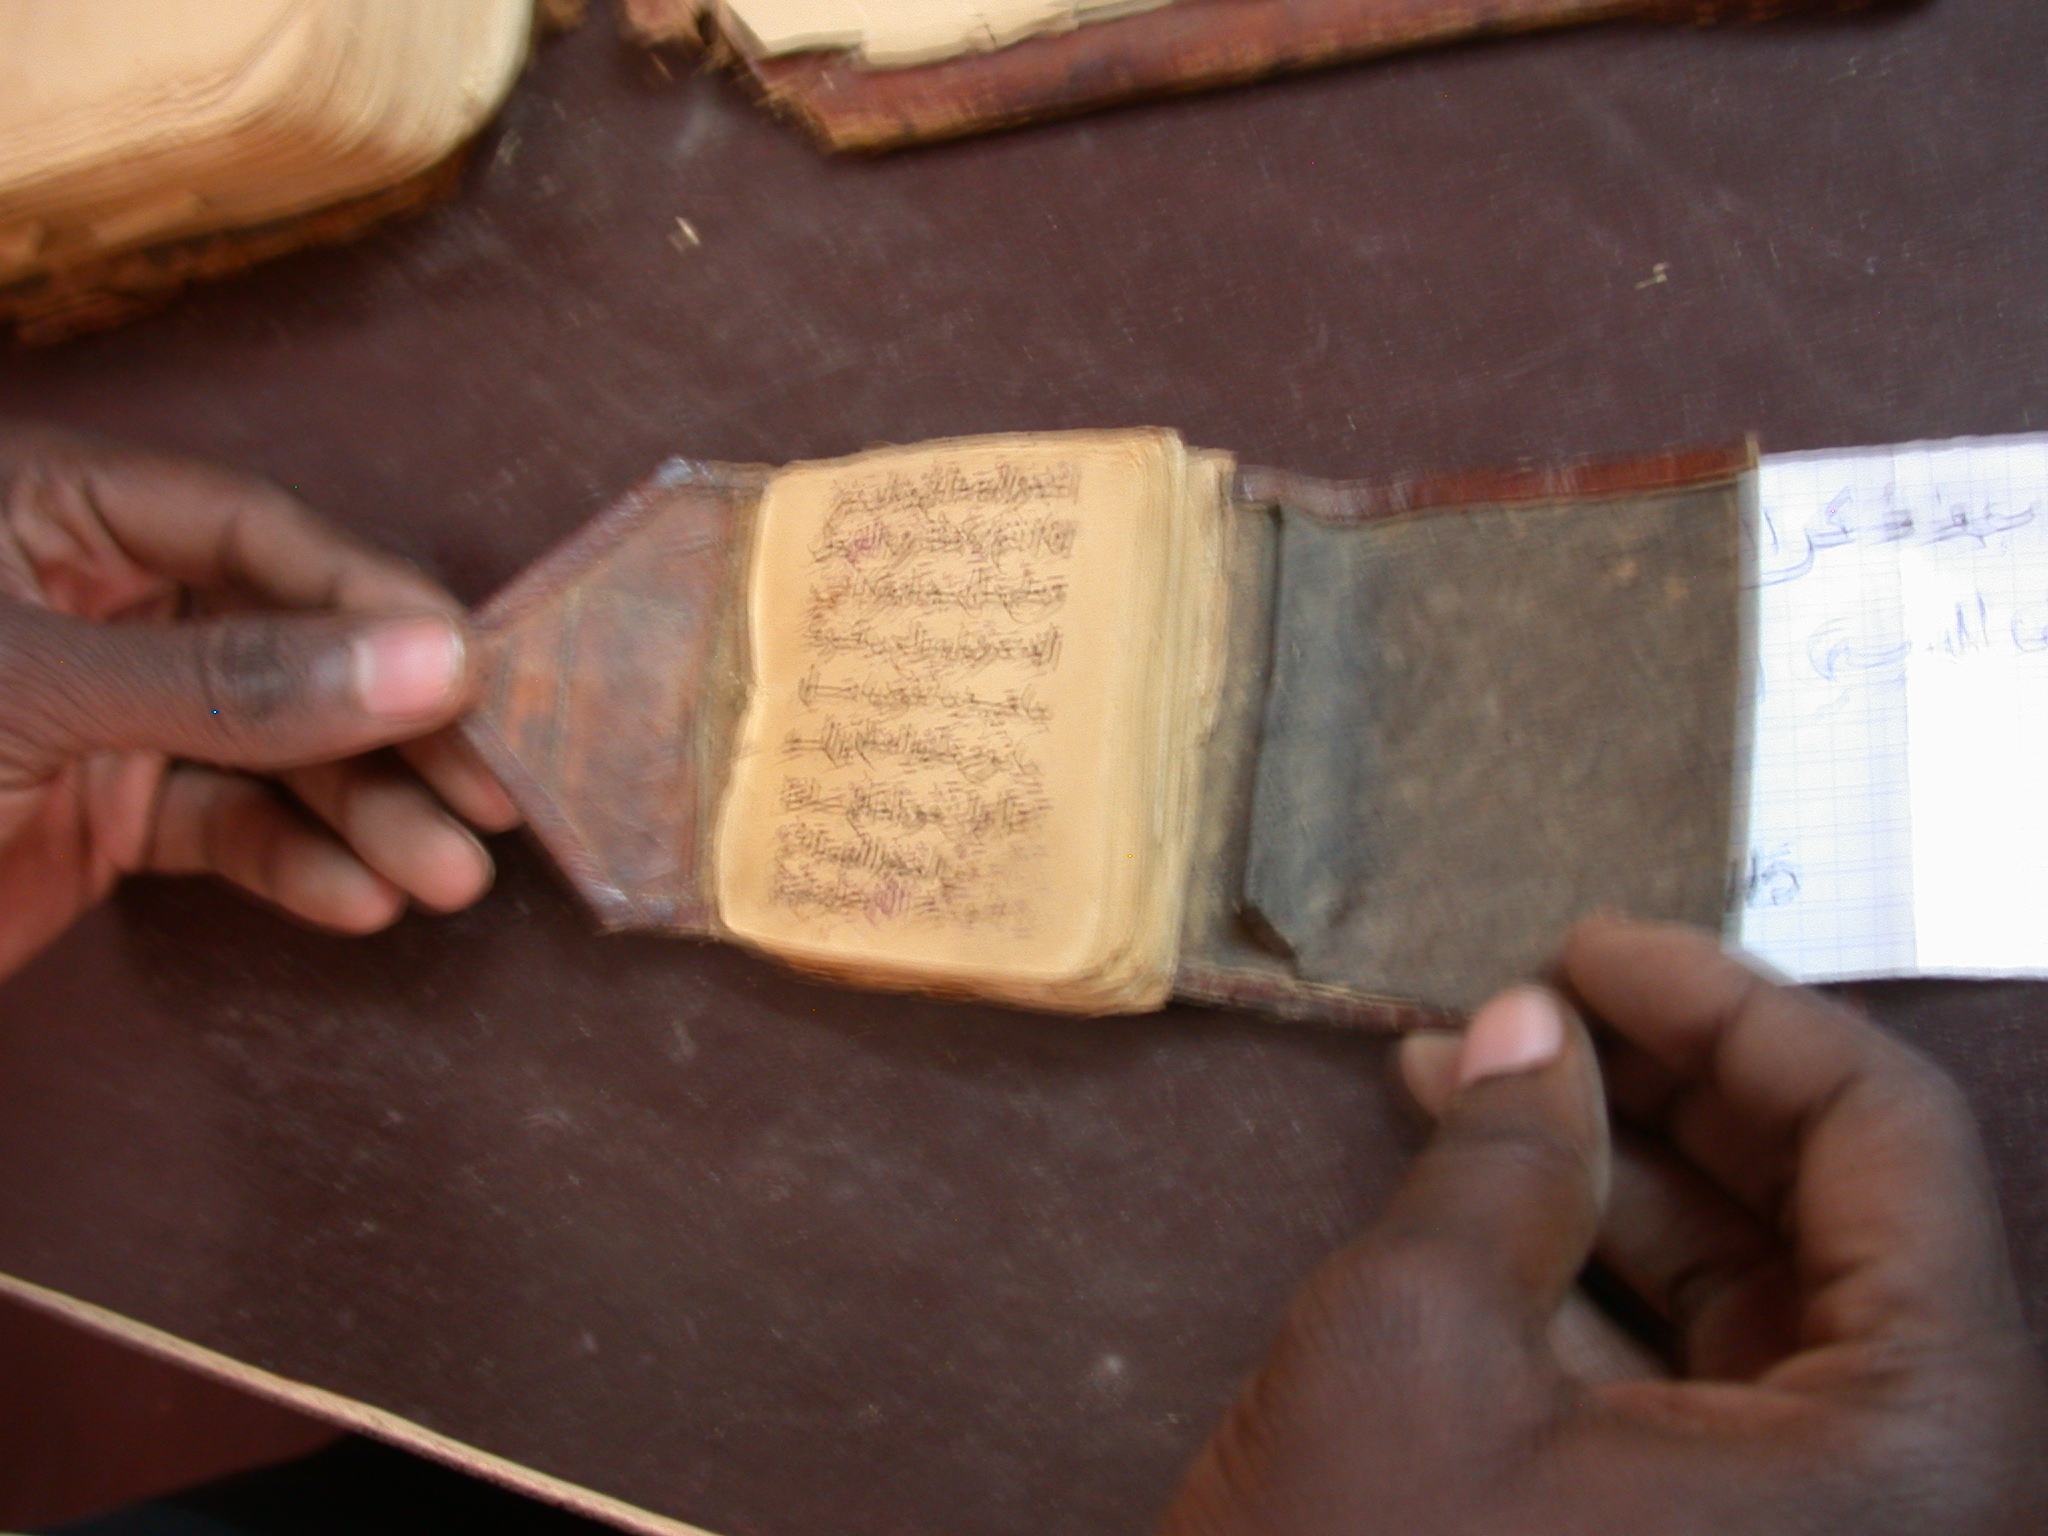 Need Transcription and Translation of Title, Arabic Label, Small Leather-Bound Manuscript, Manuscript Library, Timbuktu, Mali